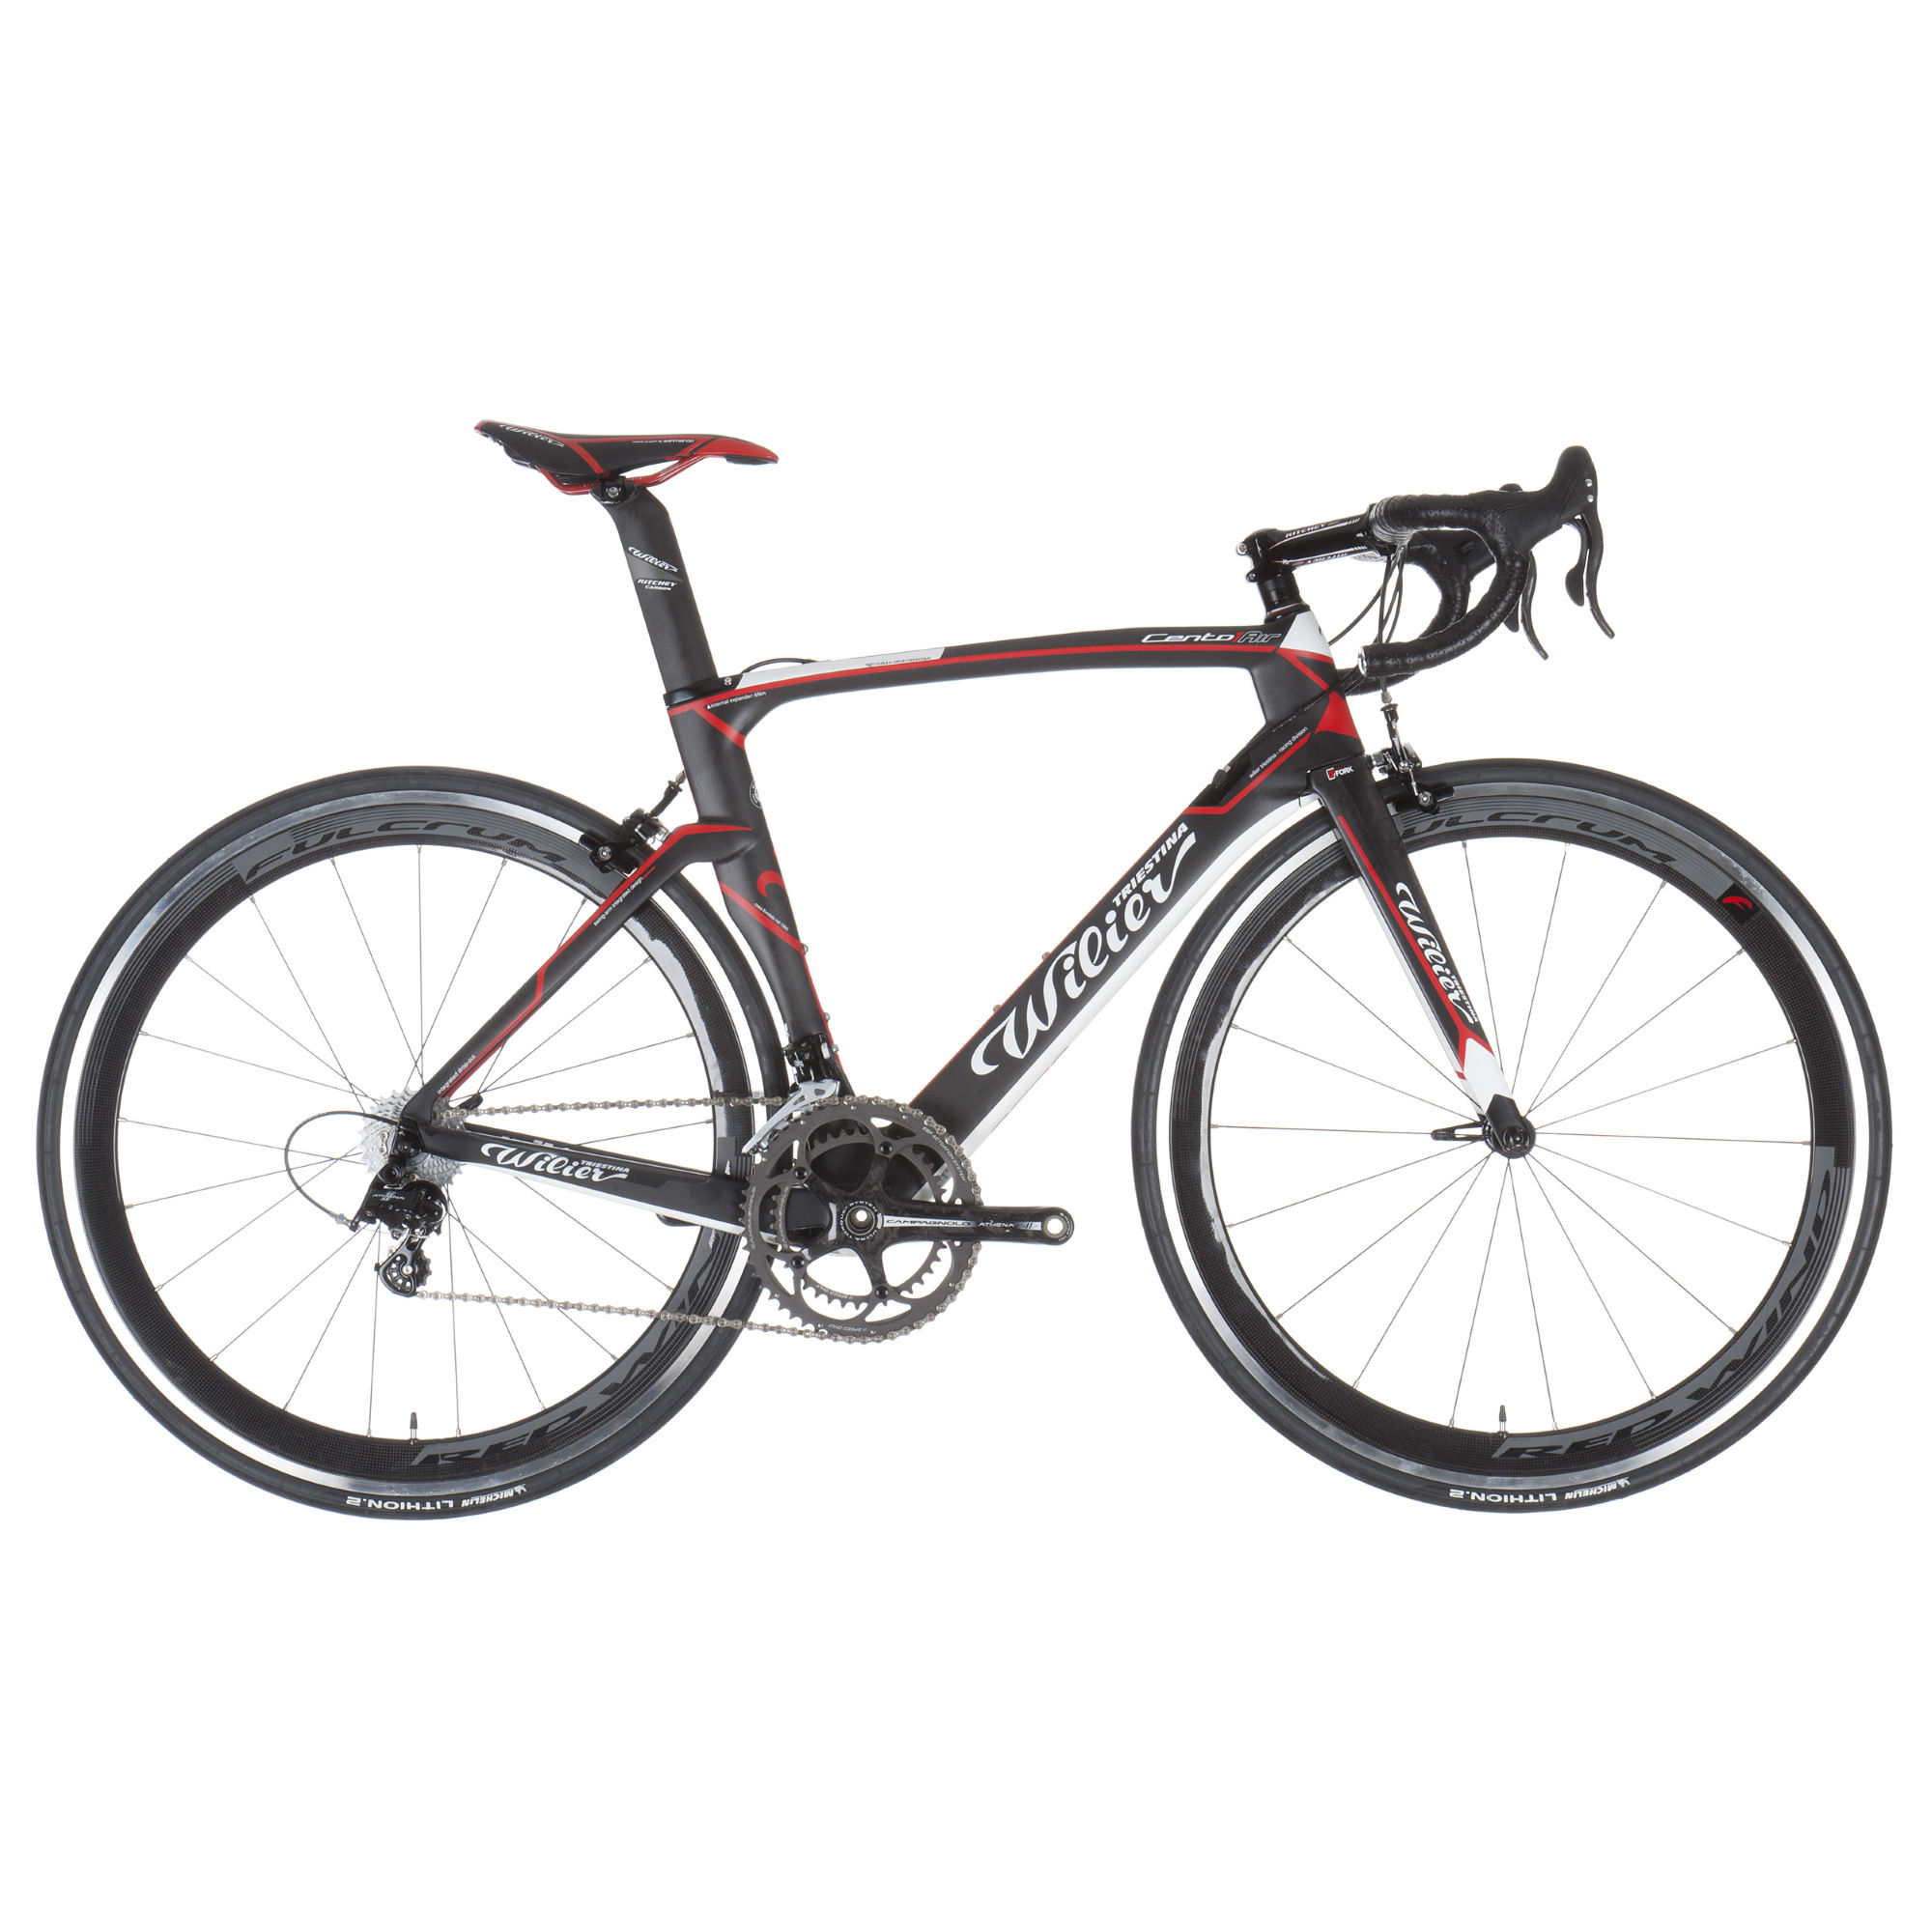 Wilier 0 7 Reviews Html Autos Post